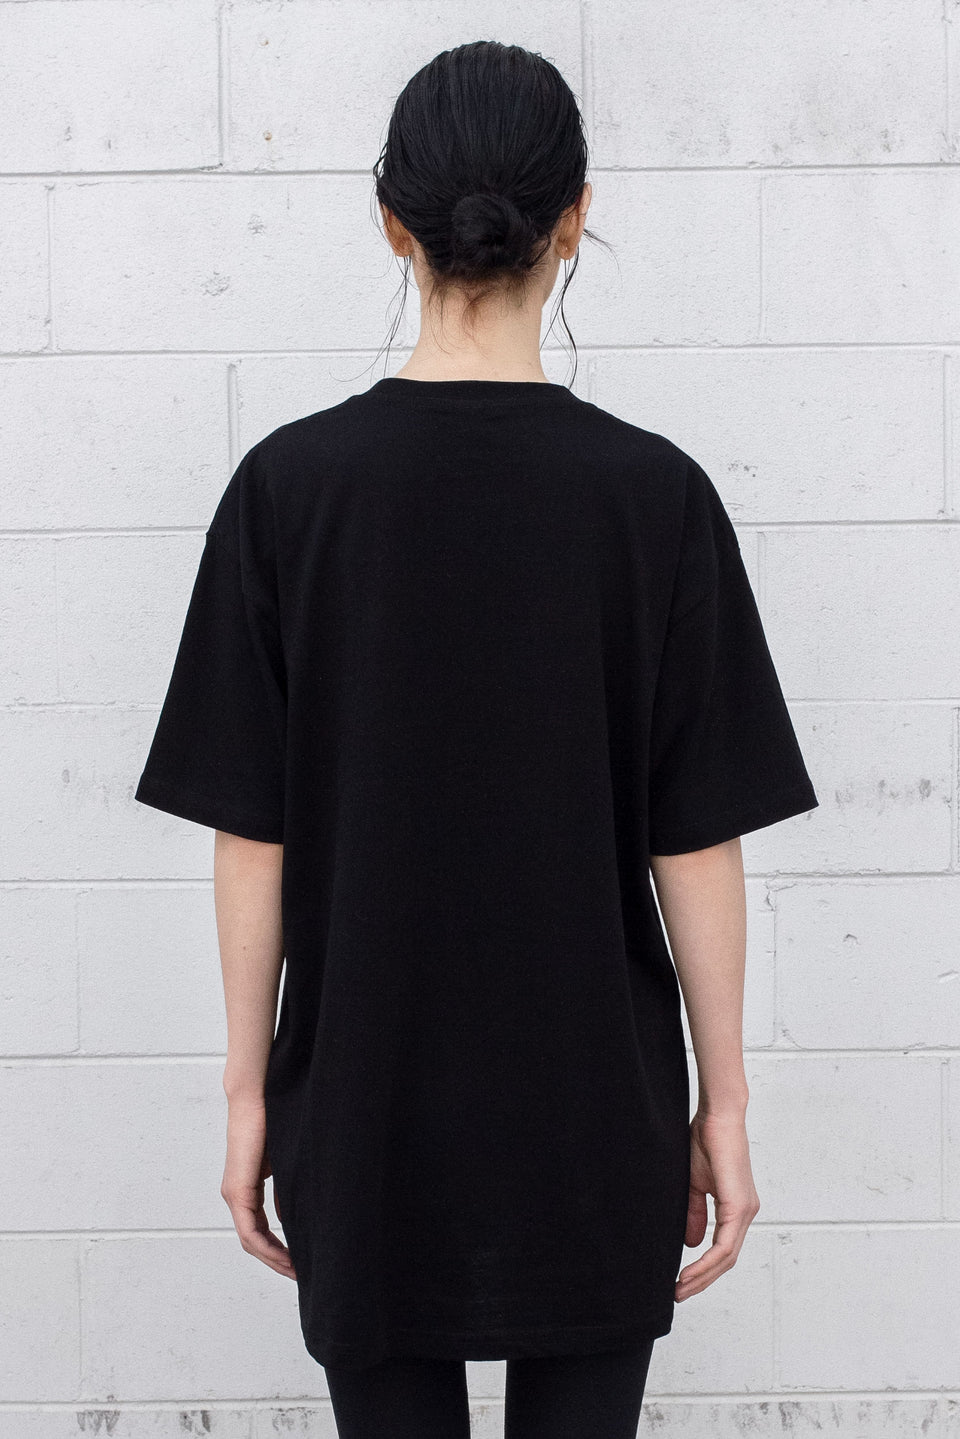 Disconnected Black Tee